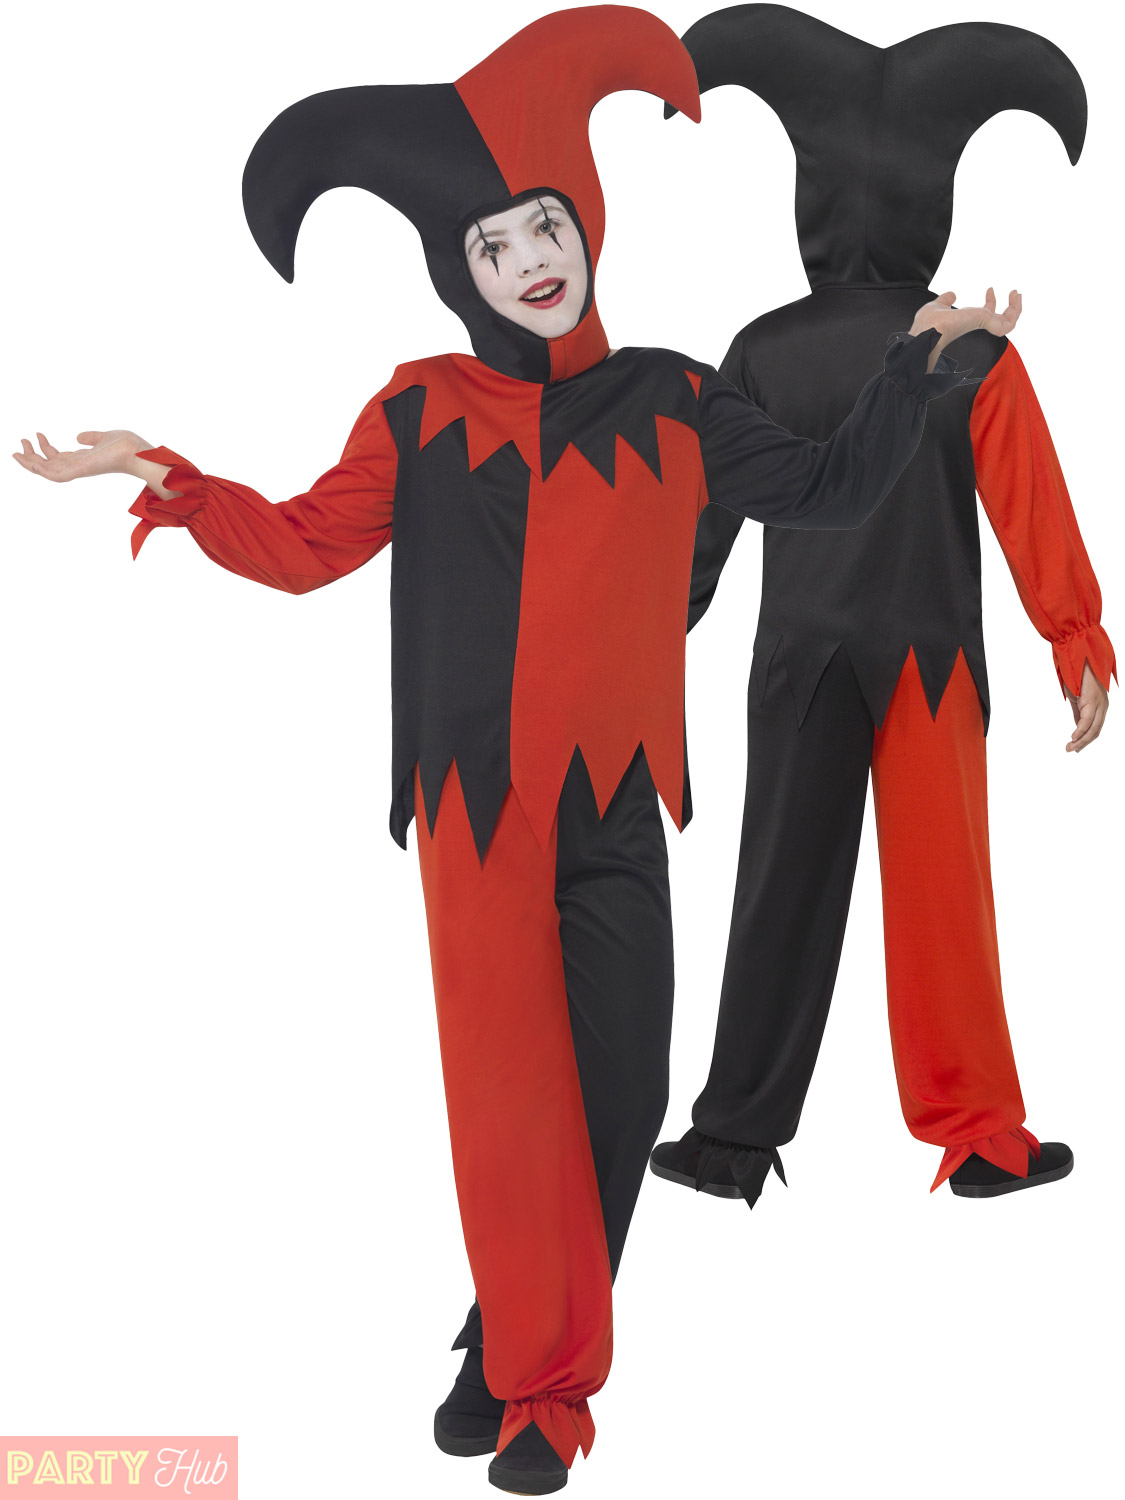 Halloween Costumes For Kidsboys.Details About Boys Twisted Evil Jester Costume Scary Clown Fancy Dress Kids Halloween Outfit